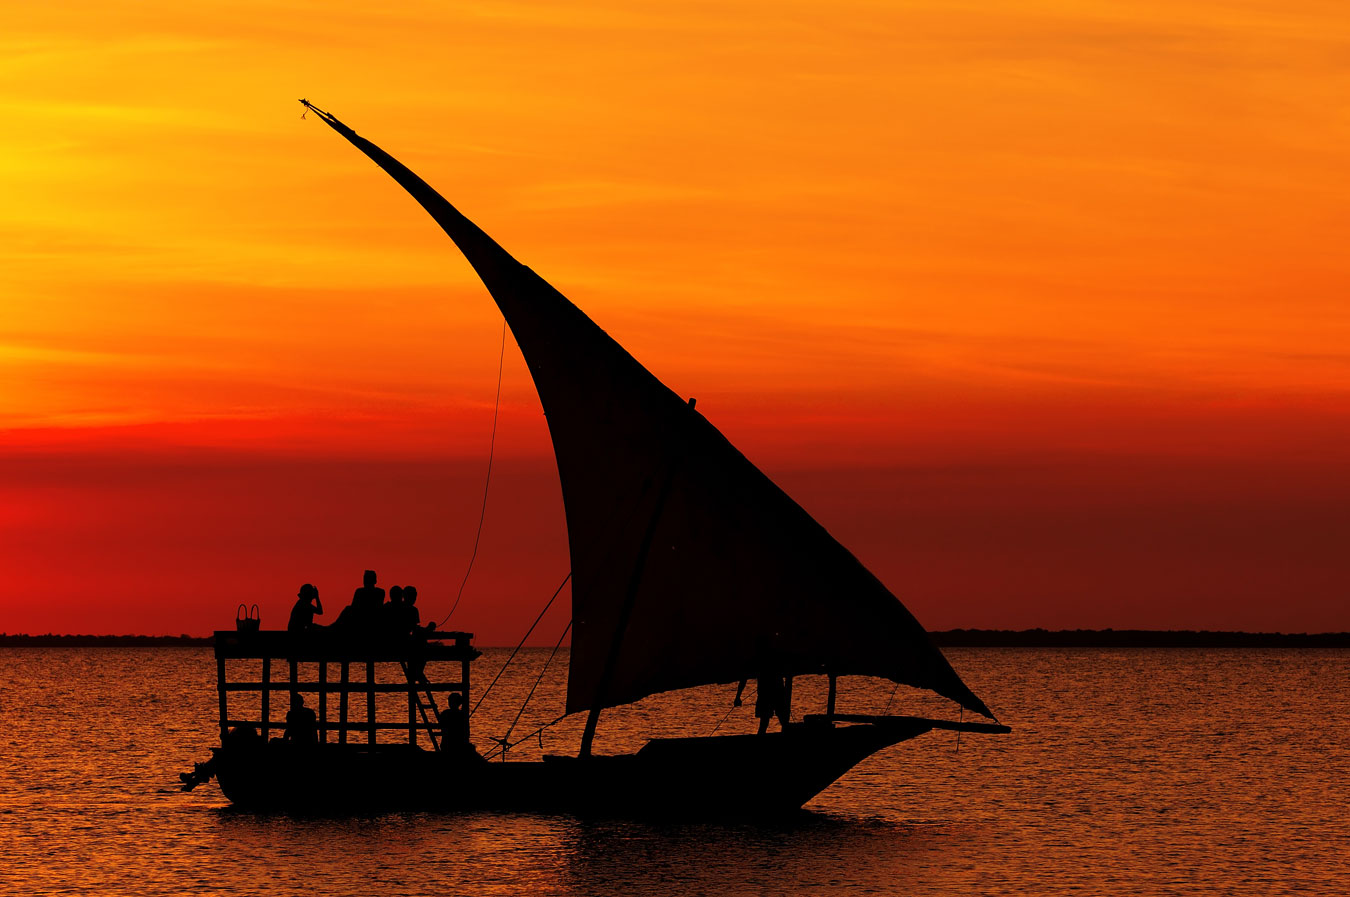 sunset cruise in zanzibar from the Z hotel